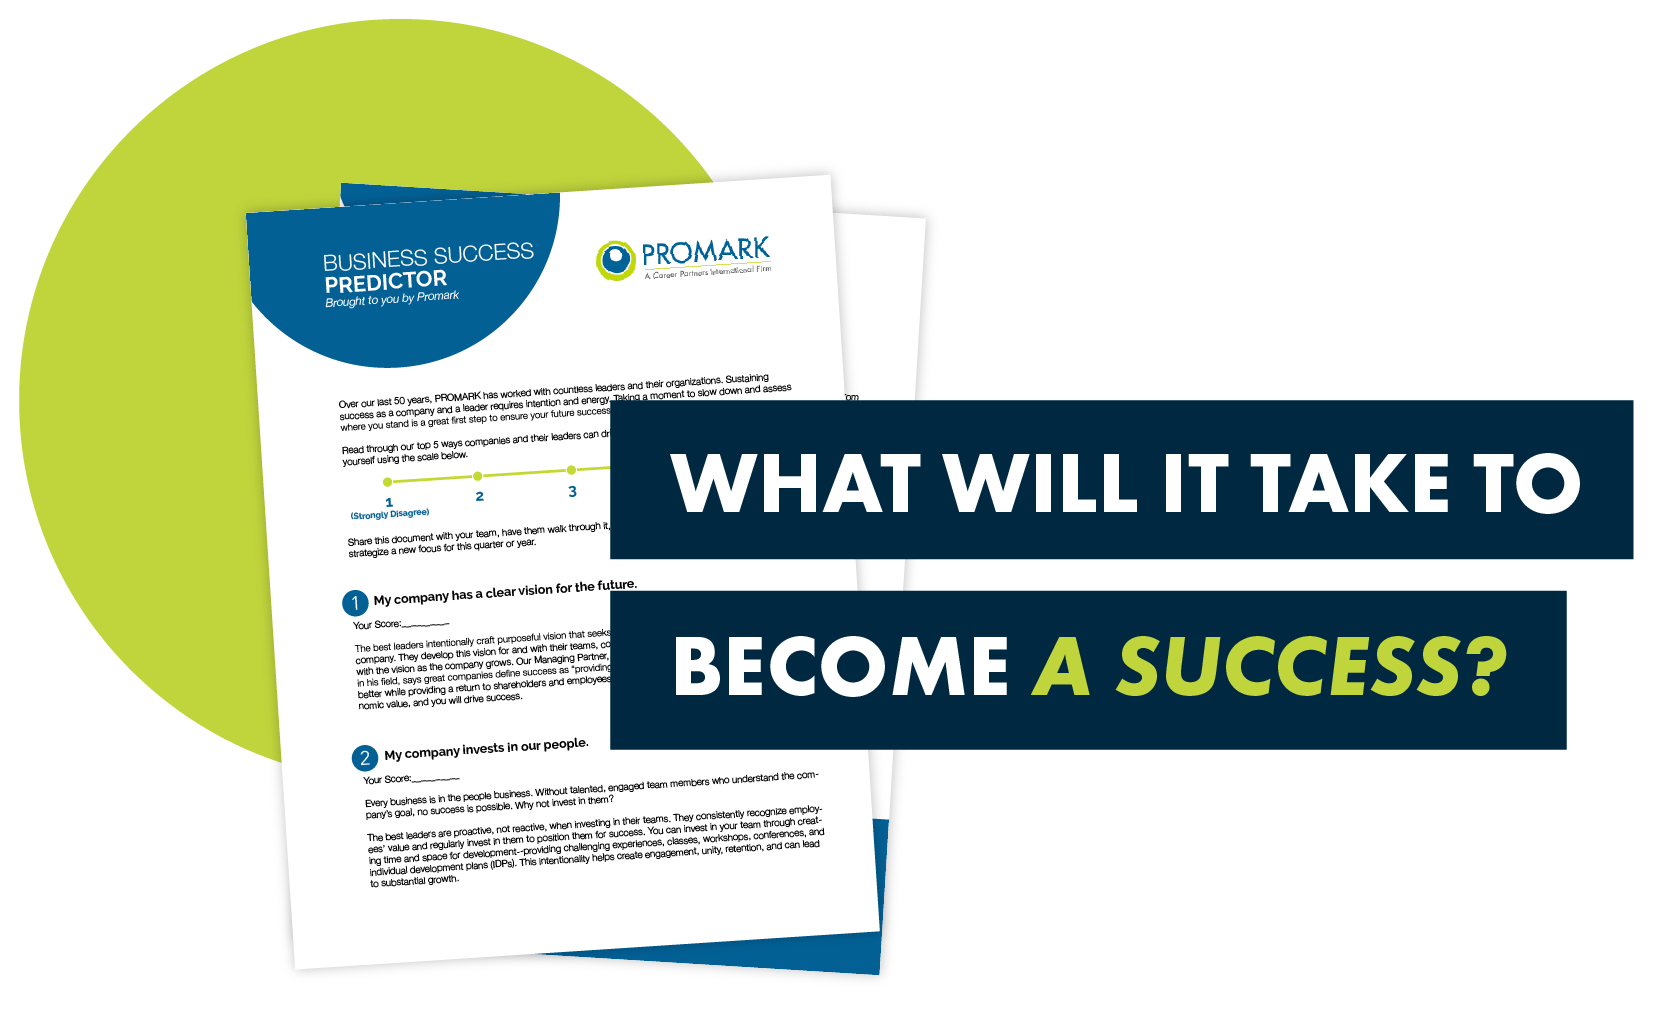 Get access to our Business Success Predictory